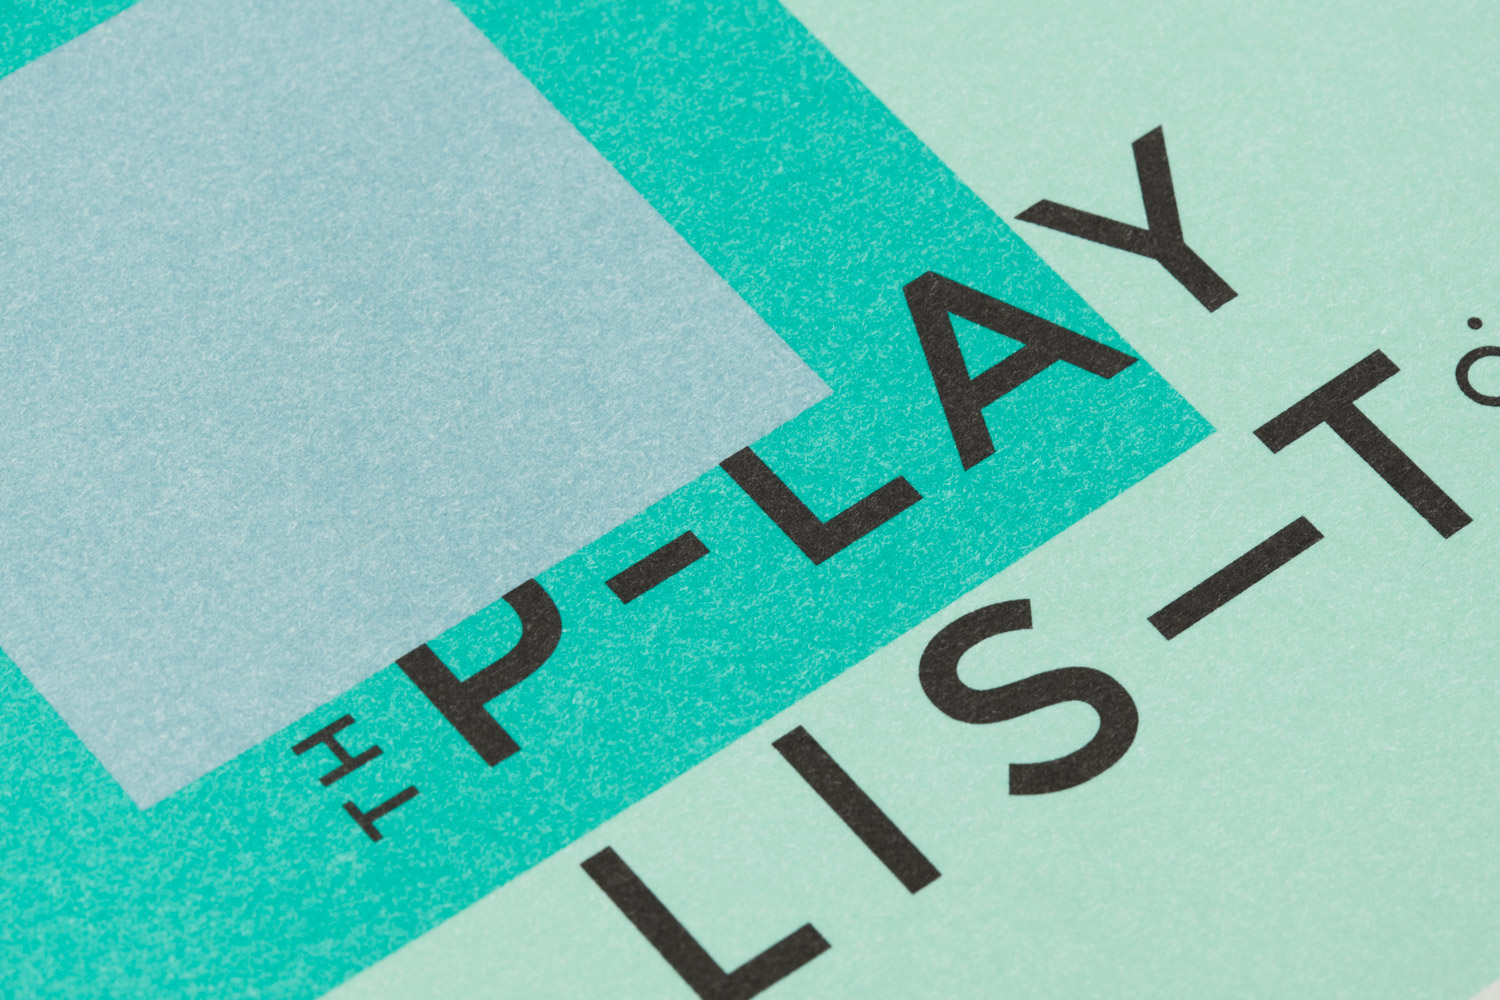 Brand identity and print for Toronto based custom event soundtrack business The Playlist Co. by graphic design studio Blok